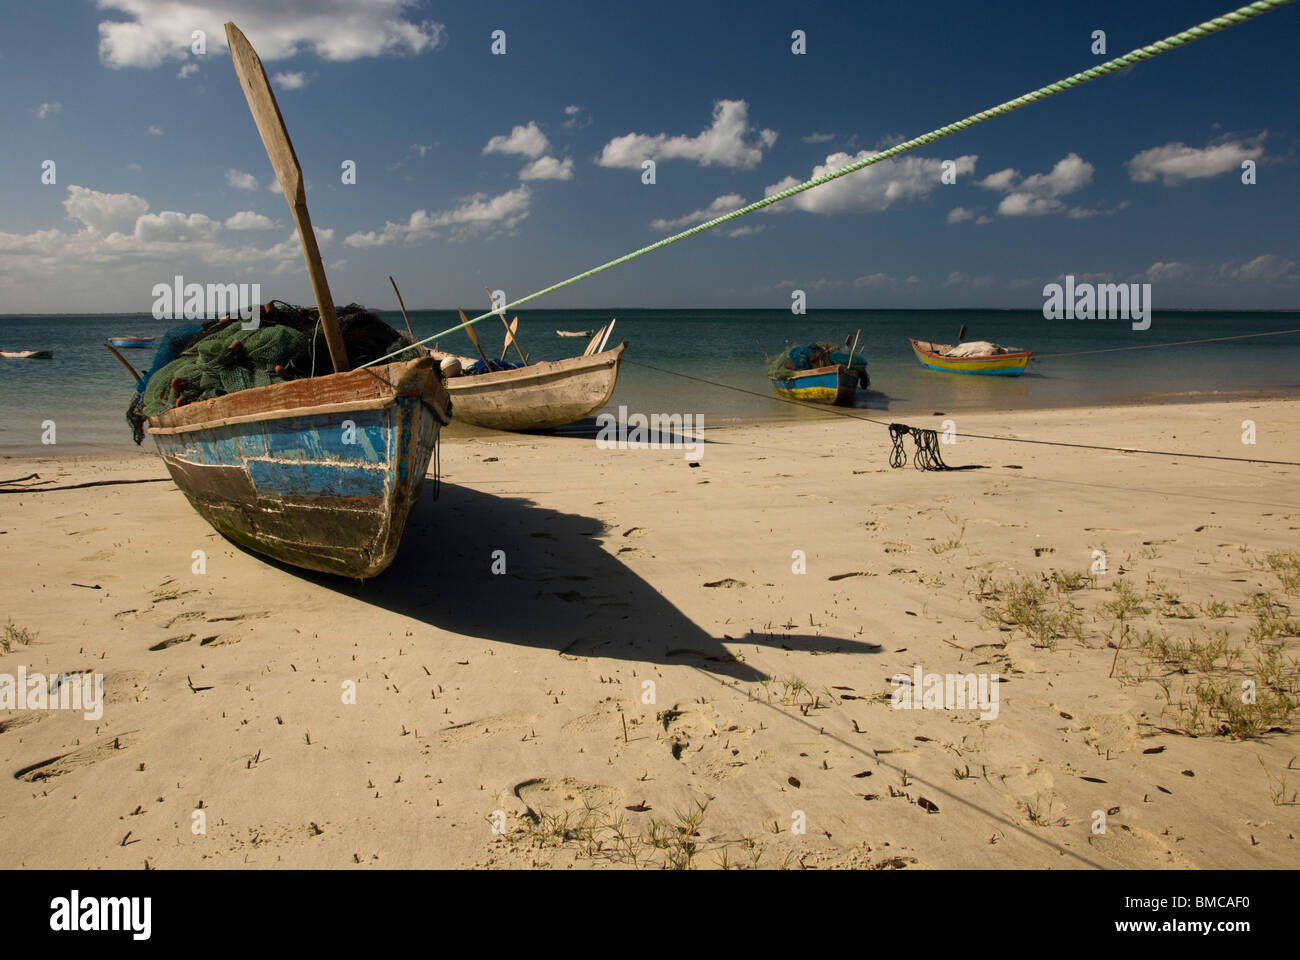 Fishing boats beached for an afternoon rest near Lunga, Nampula Province, Mozambique. - Stock Image